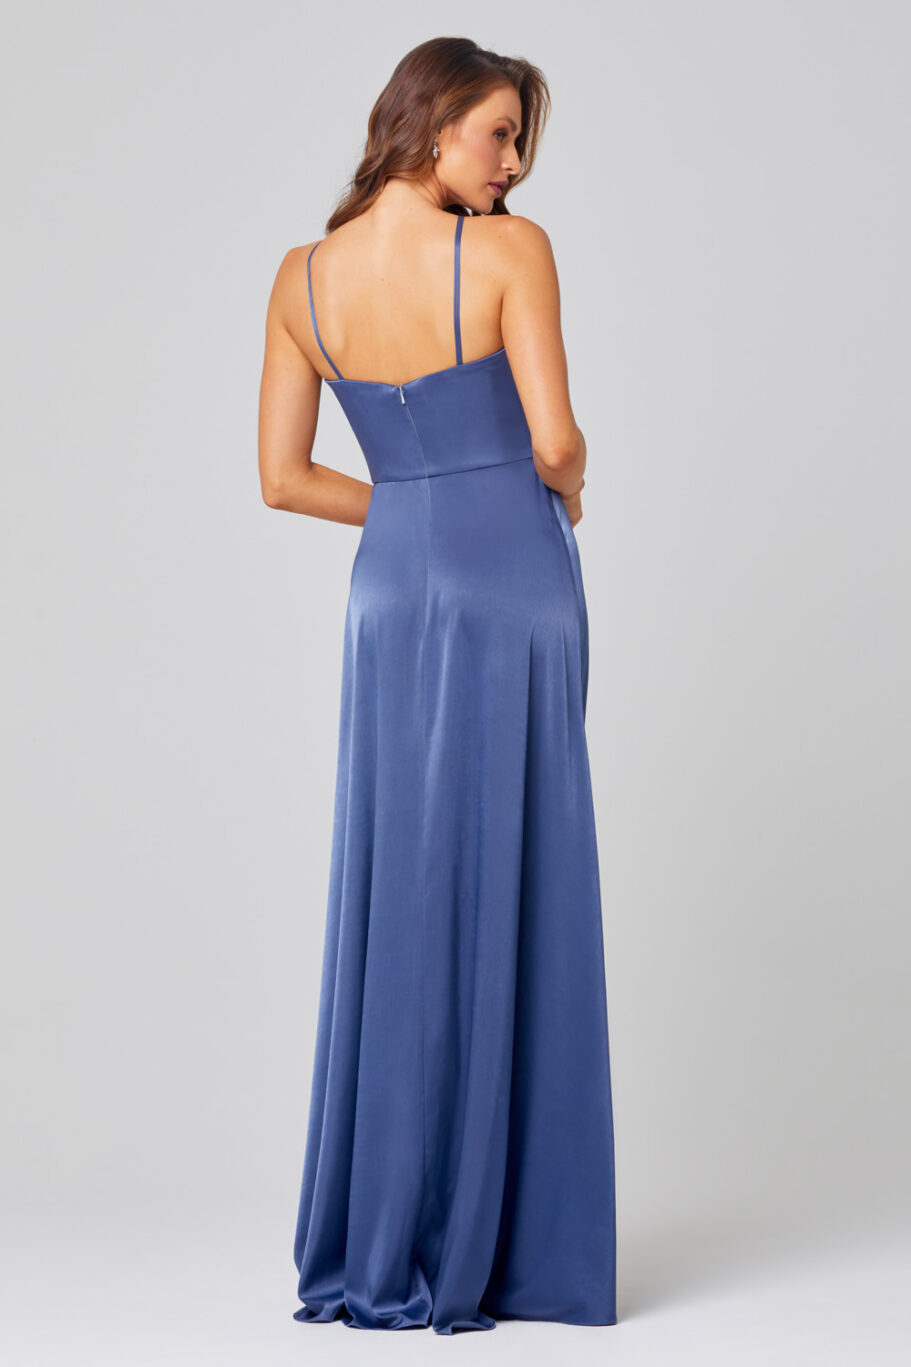 Chelsea High Neck Bridesmaid Dress - TO854 back